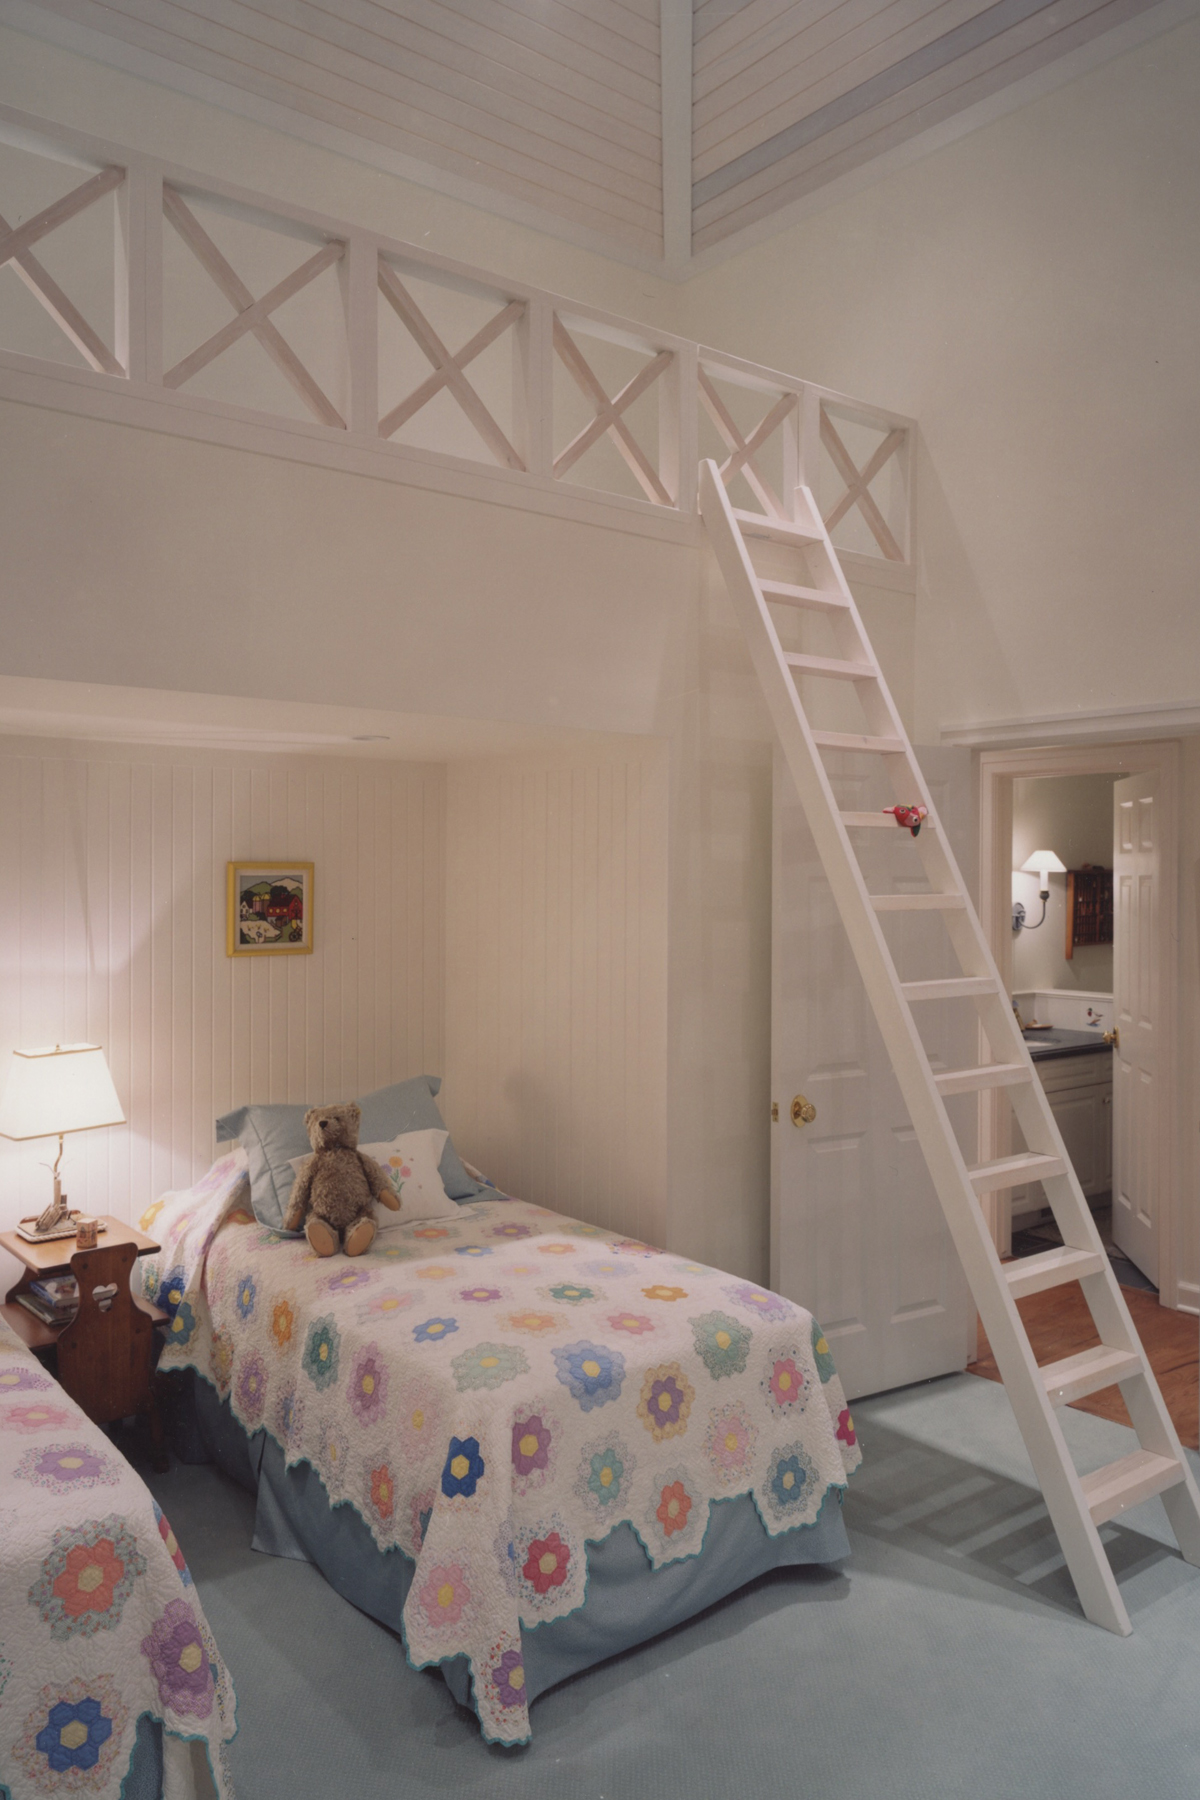 Bedroom-Loft-Ladder.jpeg